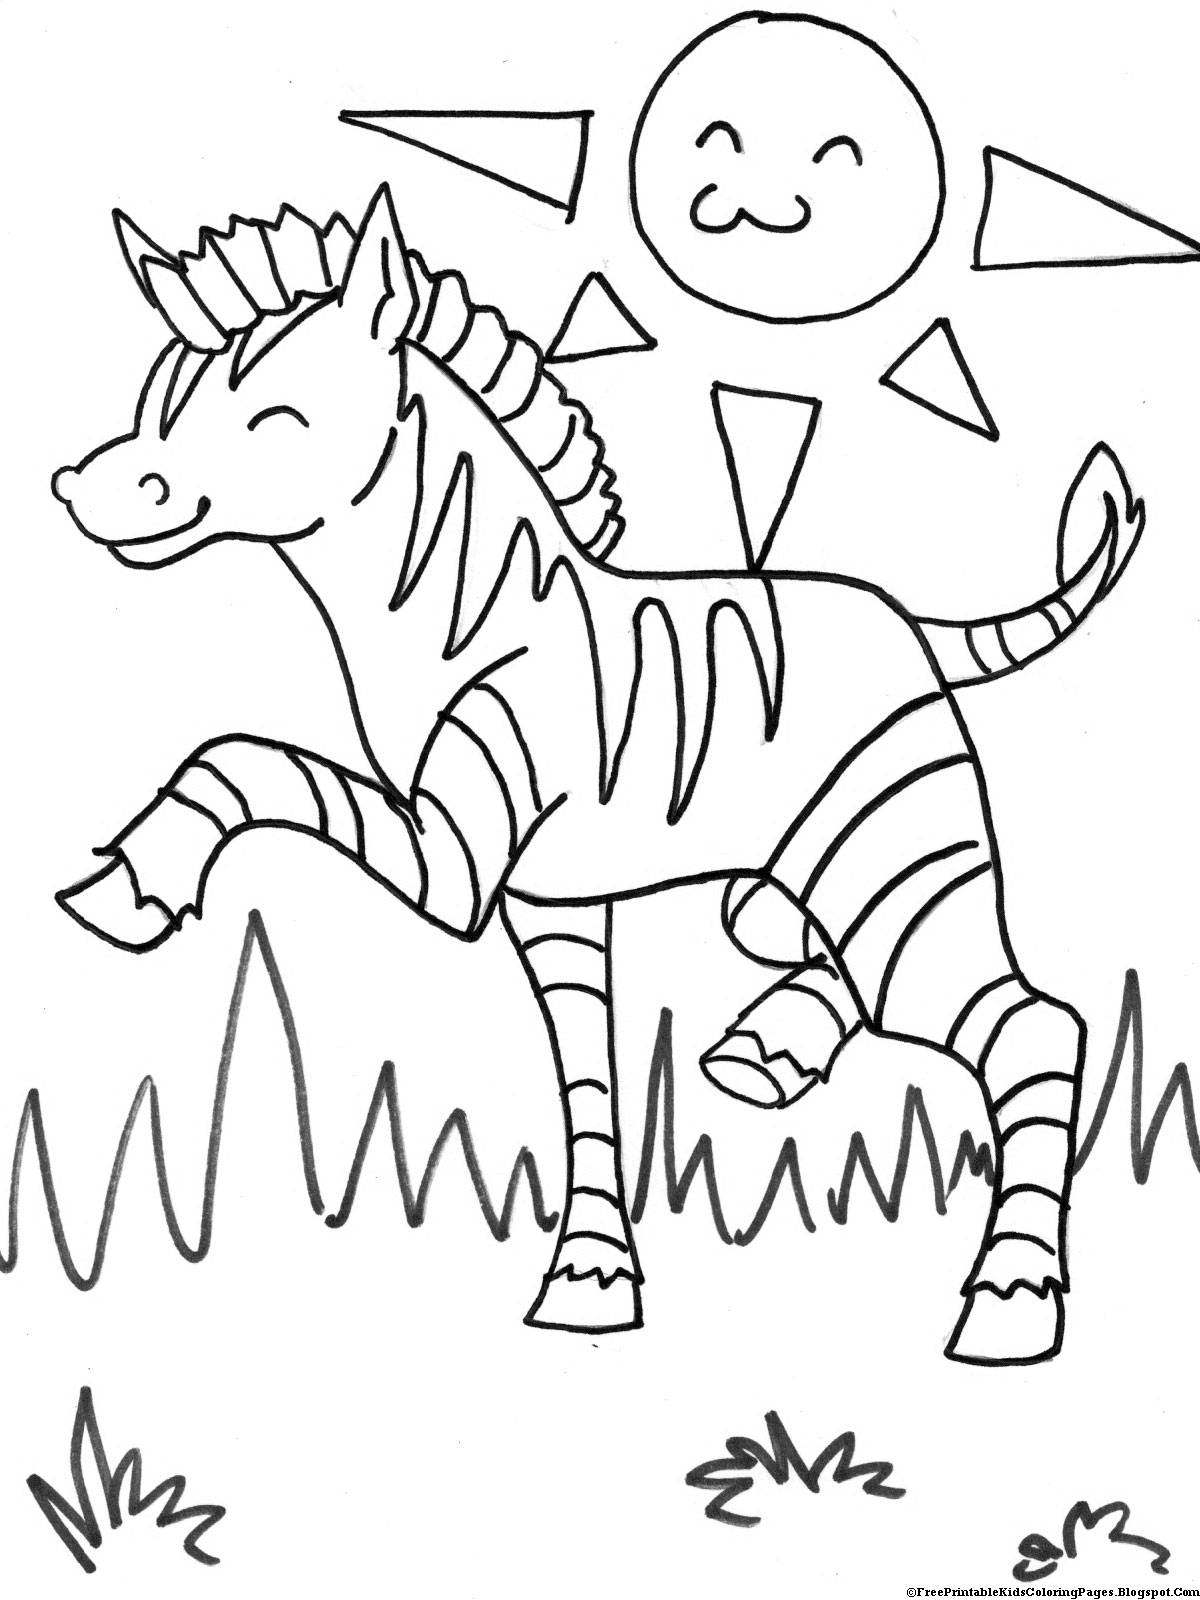 coloring worksheet animal zebra coloring pages free printable kids coloring pages animal worksheet coloring